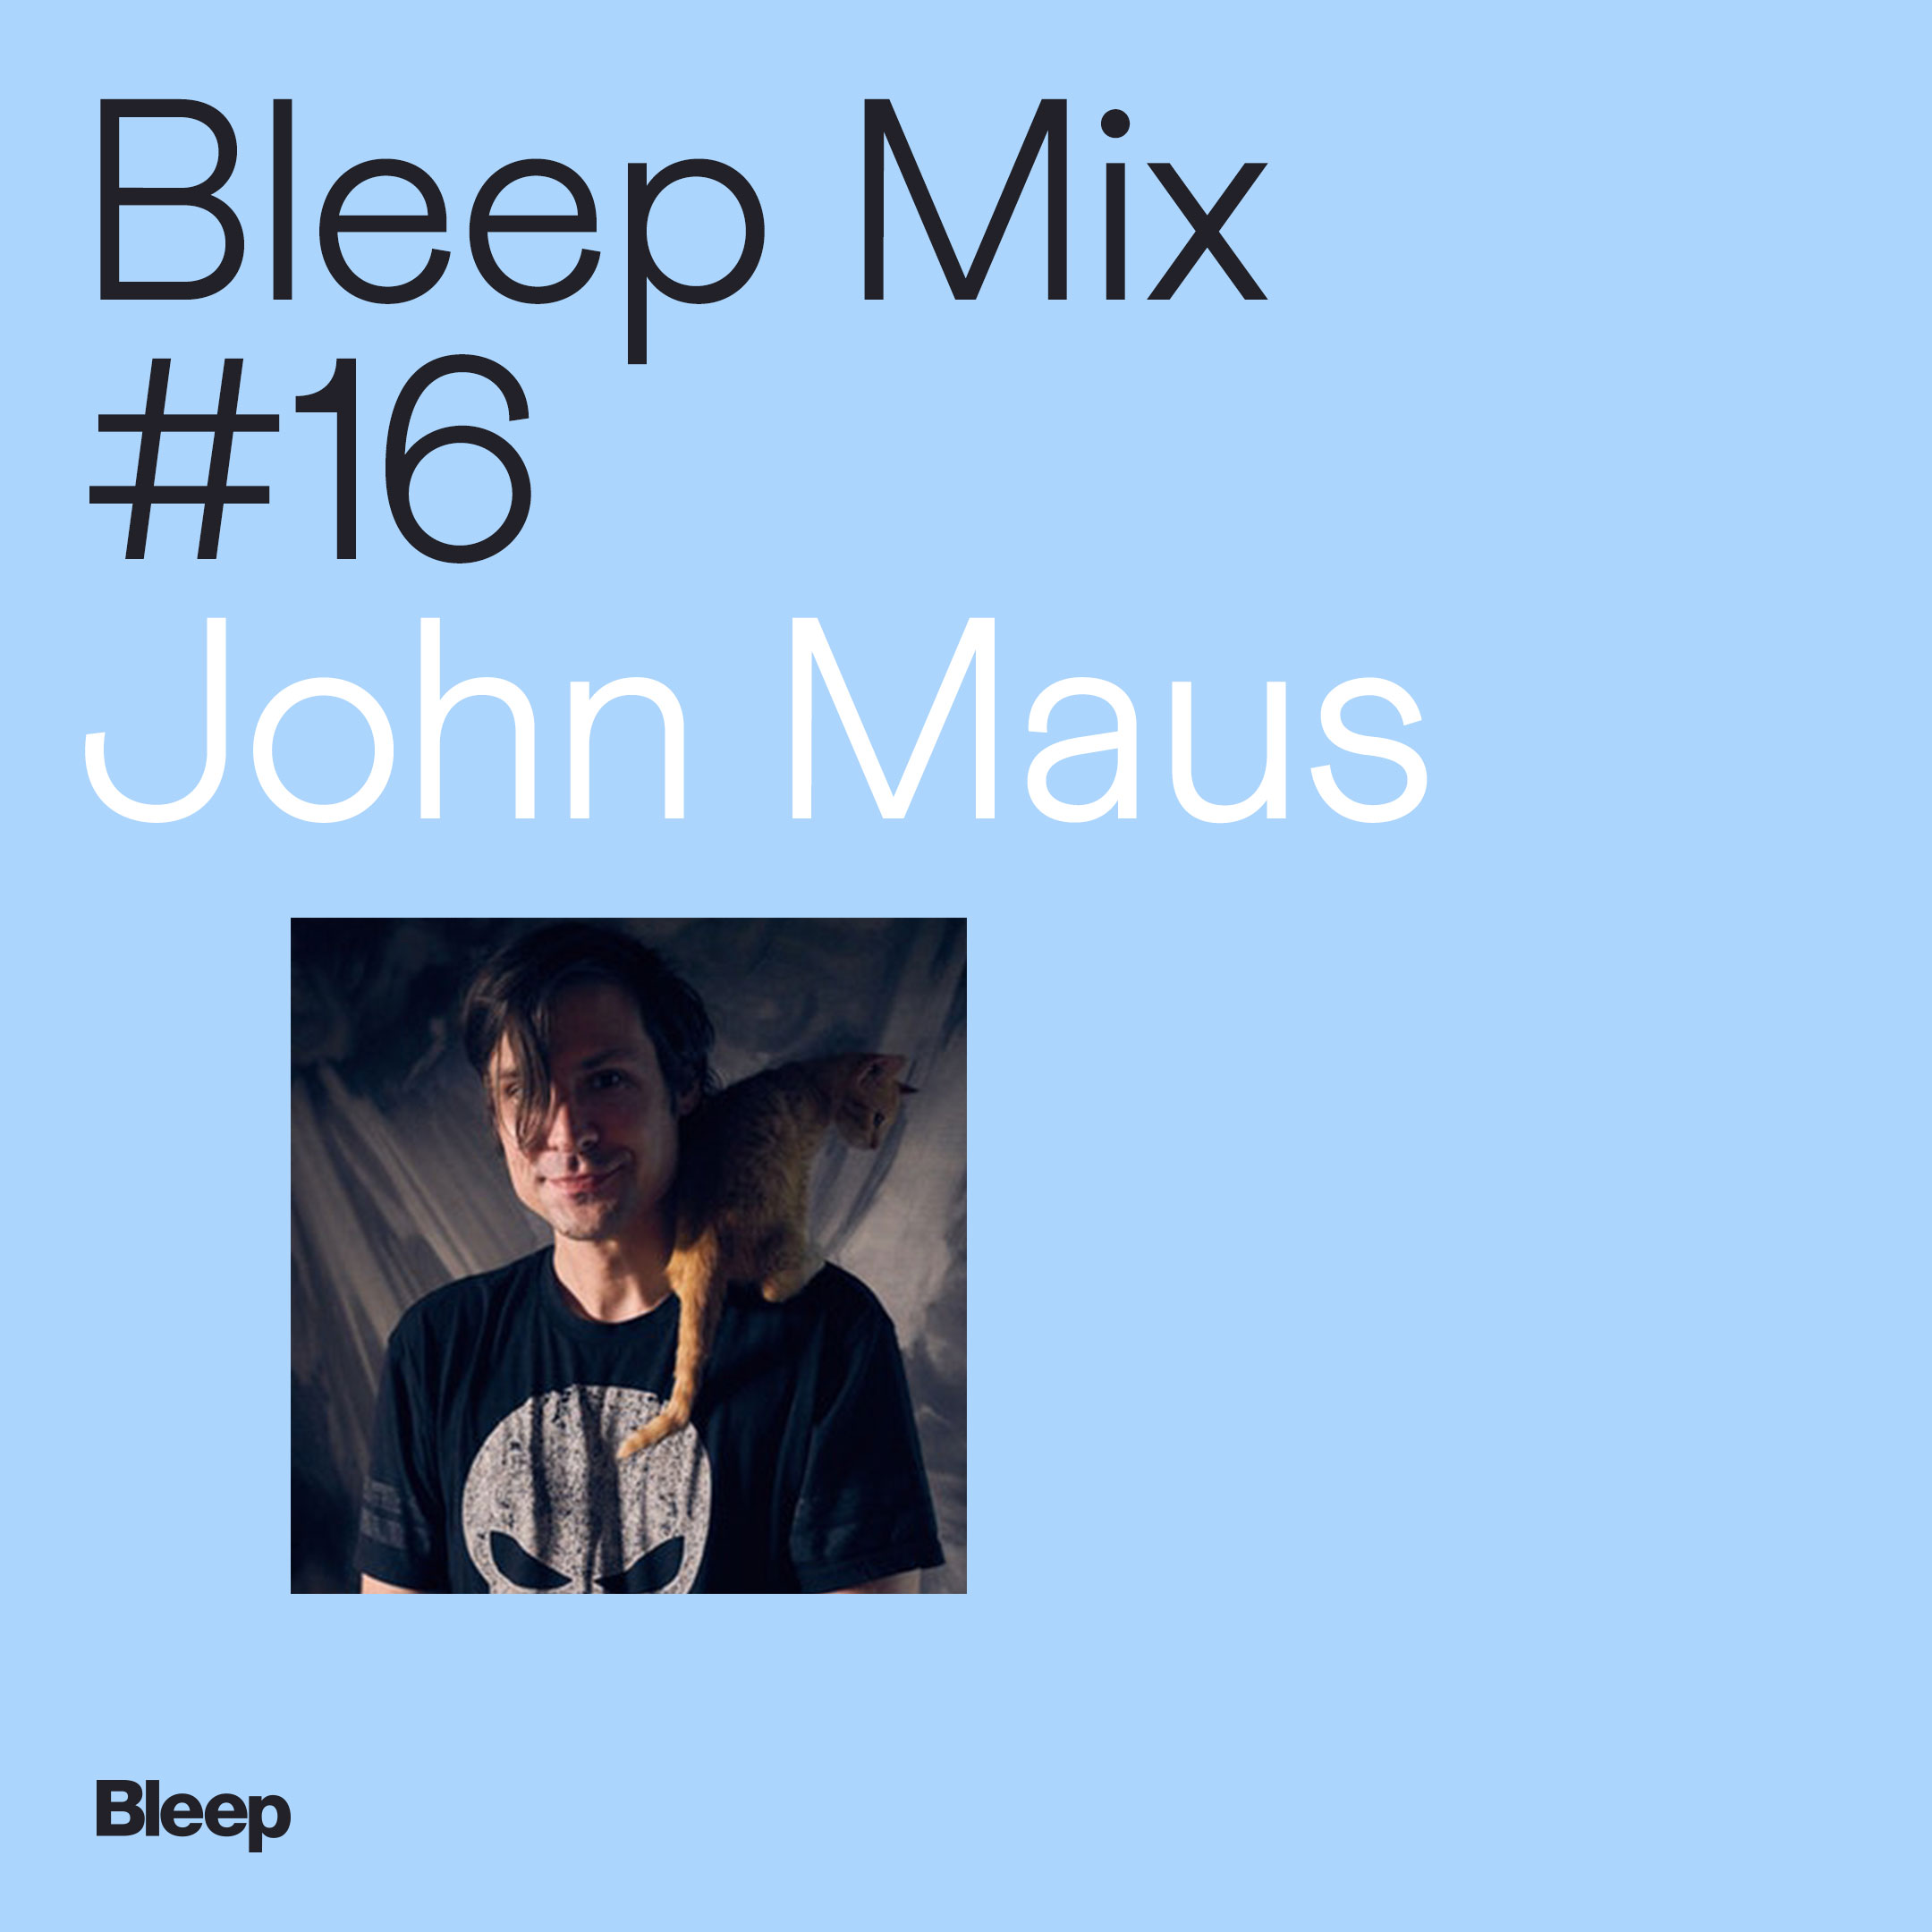 Bleep Mix #16 - John Maus